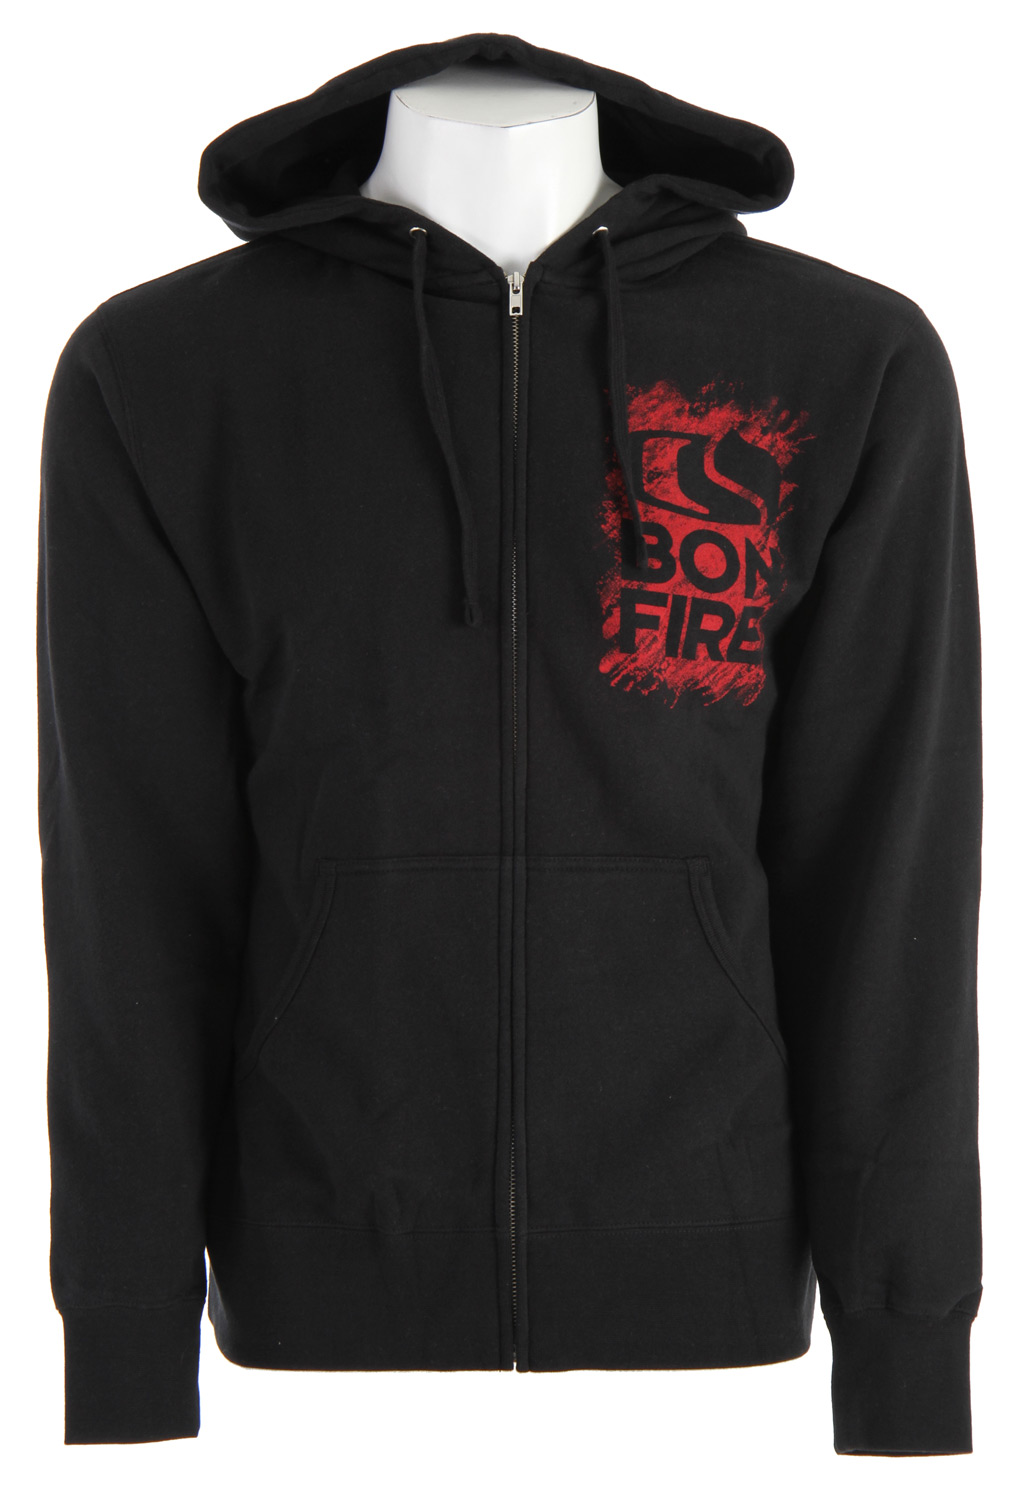 Combed cotton classic, built to burn.Material: Cotton Type: Logo Hood: Yes Zipper: Full Zip Fit: Regular Pockets: 2 Insulation: Midweight Insulation - $32.95